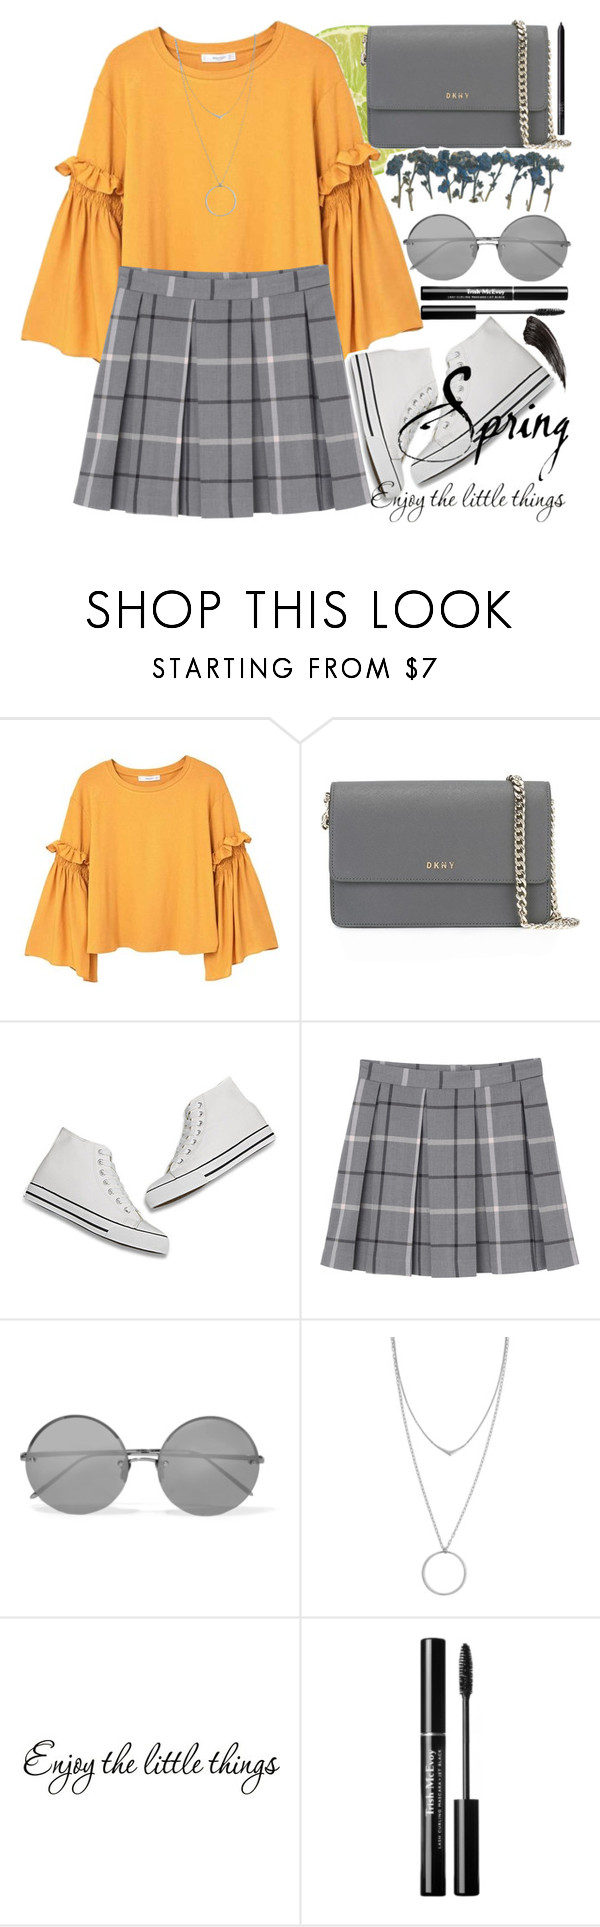 """""""  It wasn't just a dream  """" by lia-adln ❤ liked on Polyvore featuring MANGO, DKNY, Monki, Linda Farrow, Botkier, WALL and NARS Cosmetics"""